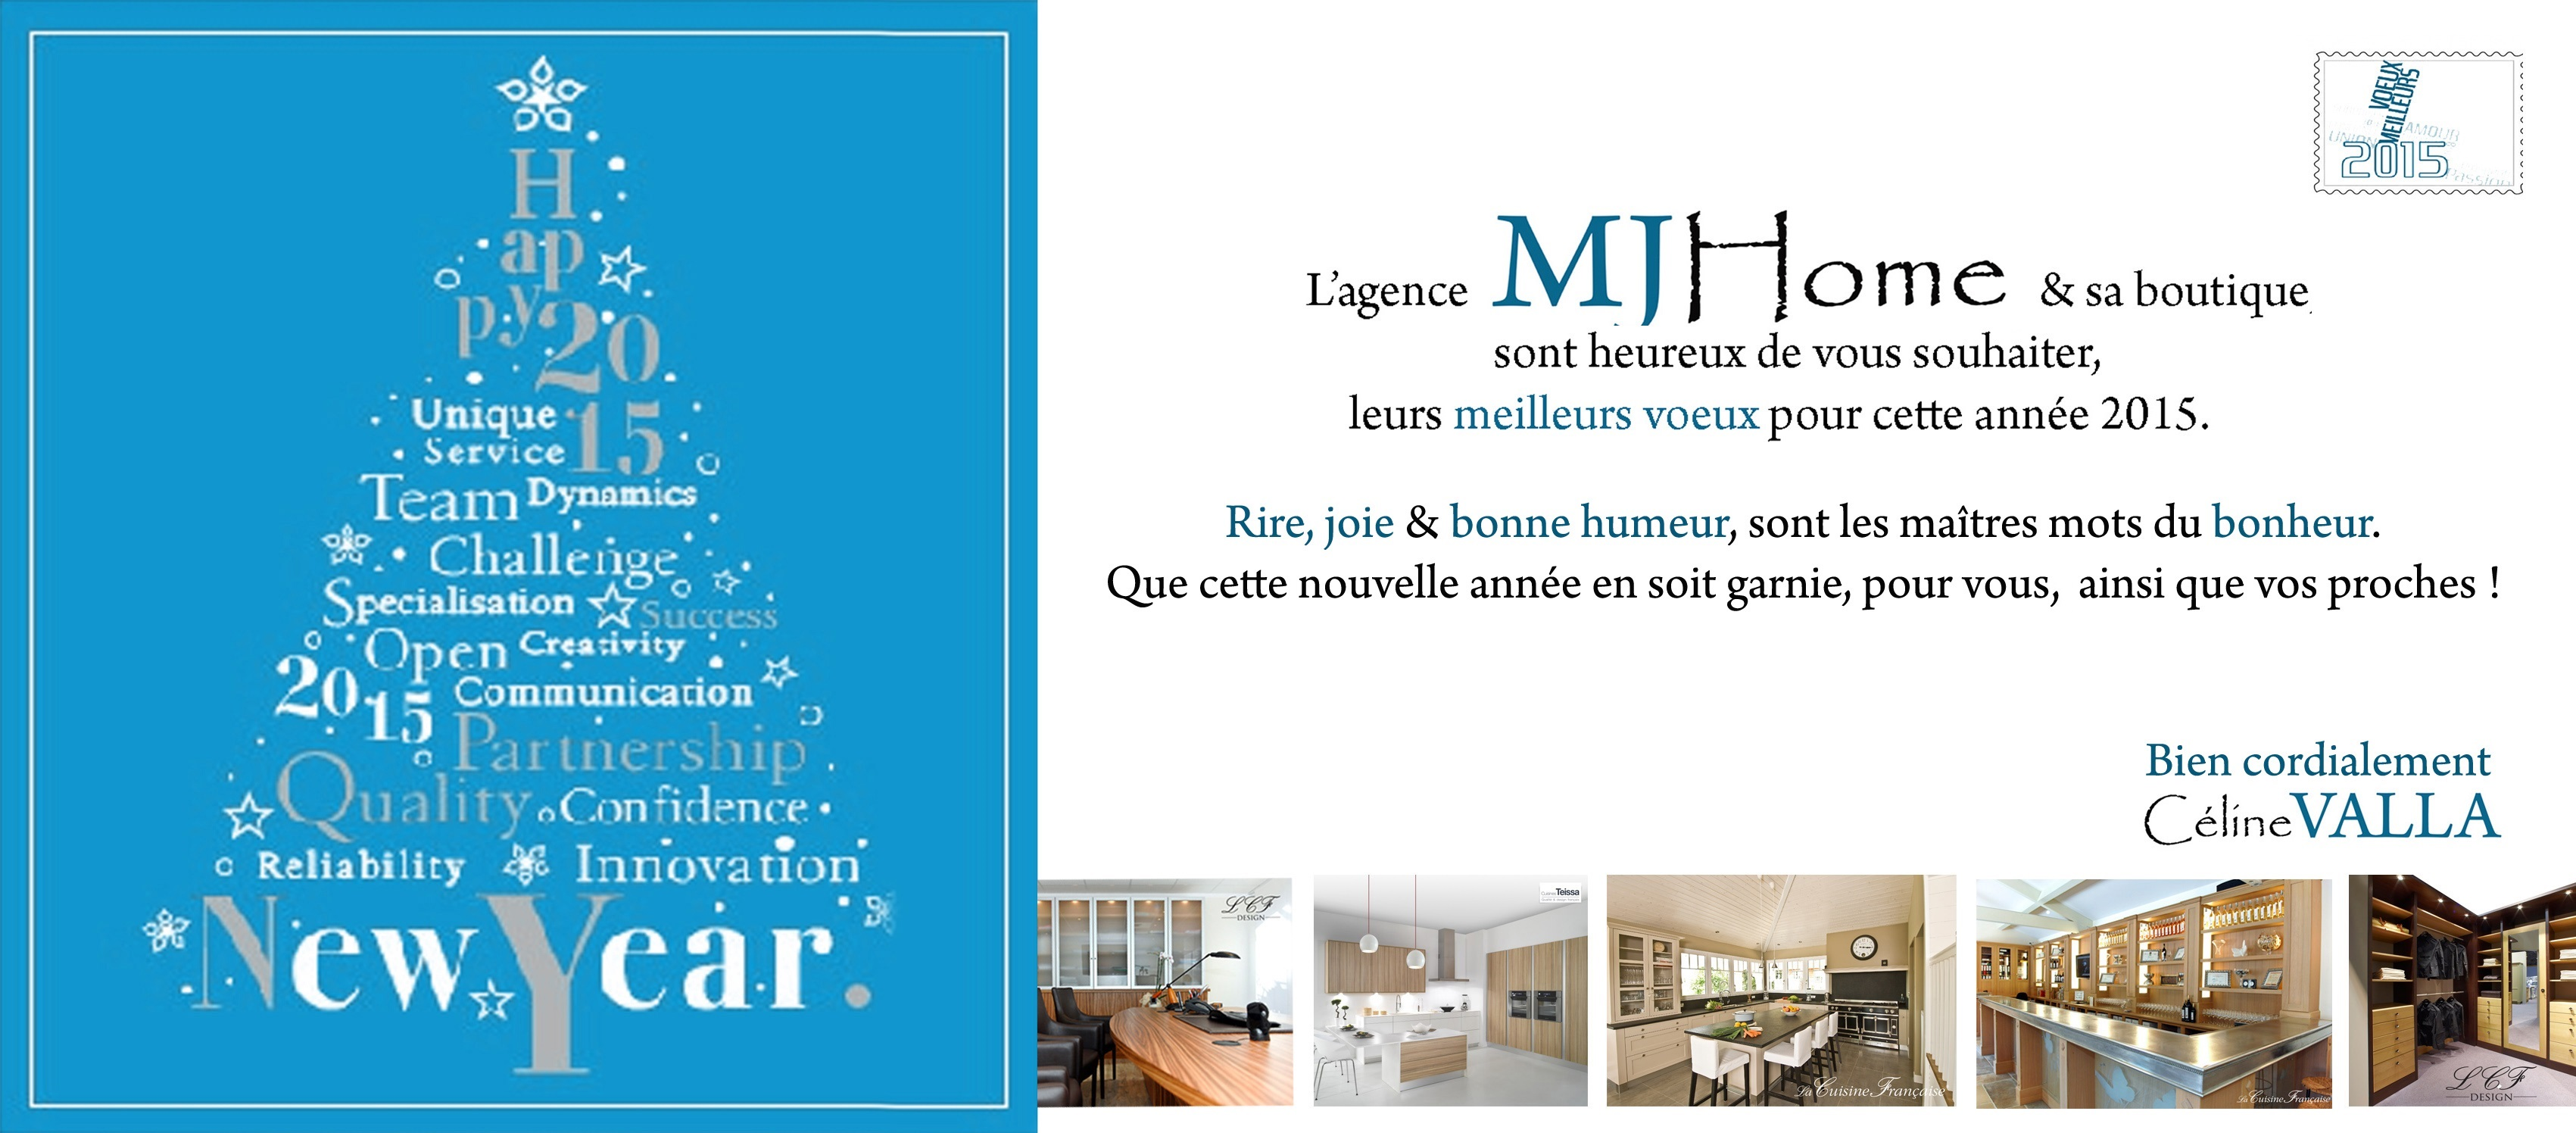 CARTE DE VOEUX MJ HOME 2015